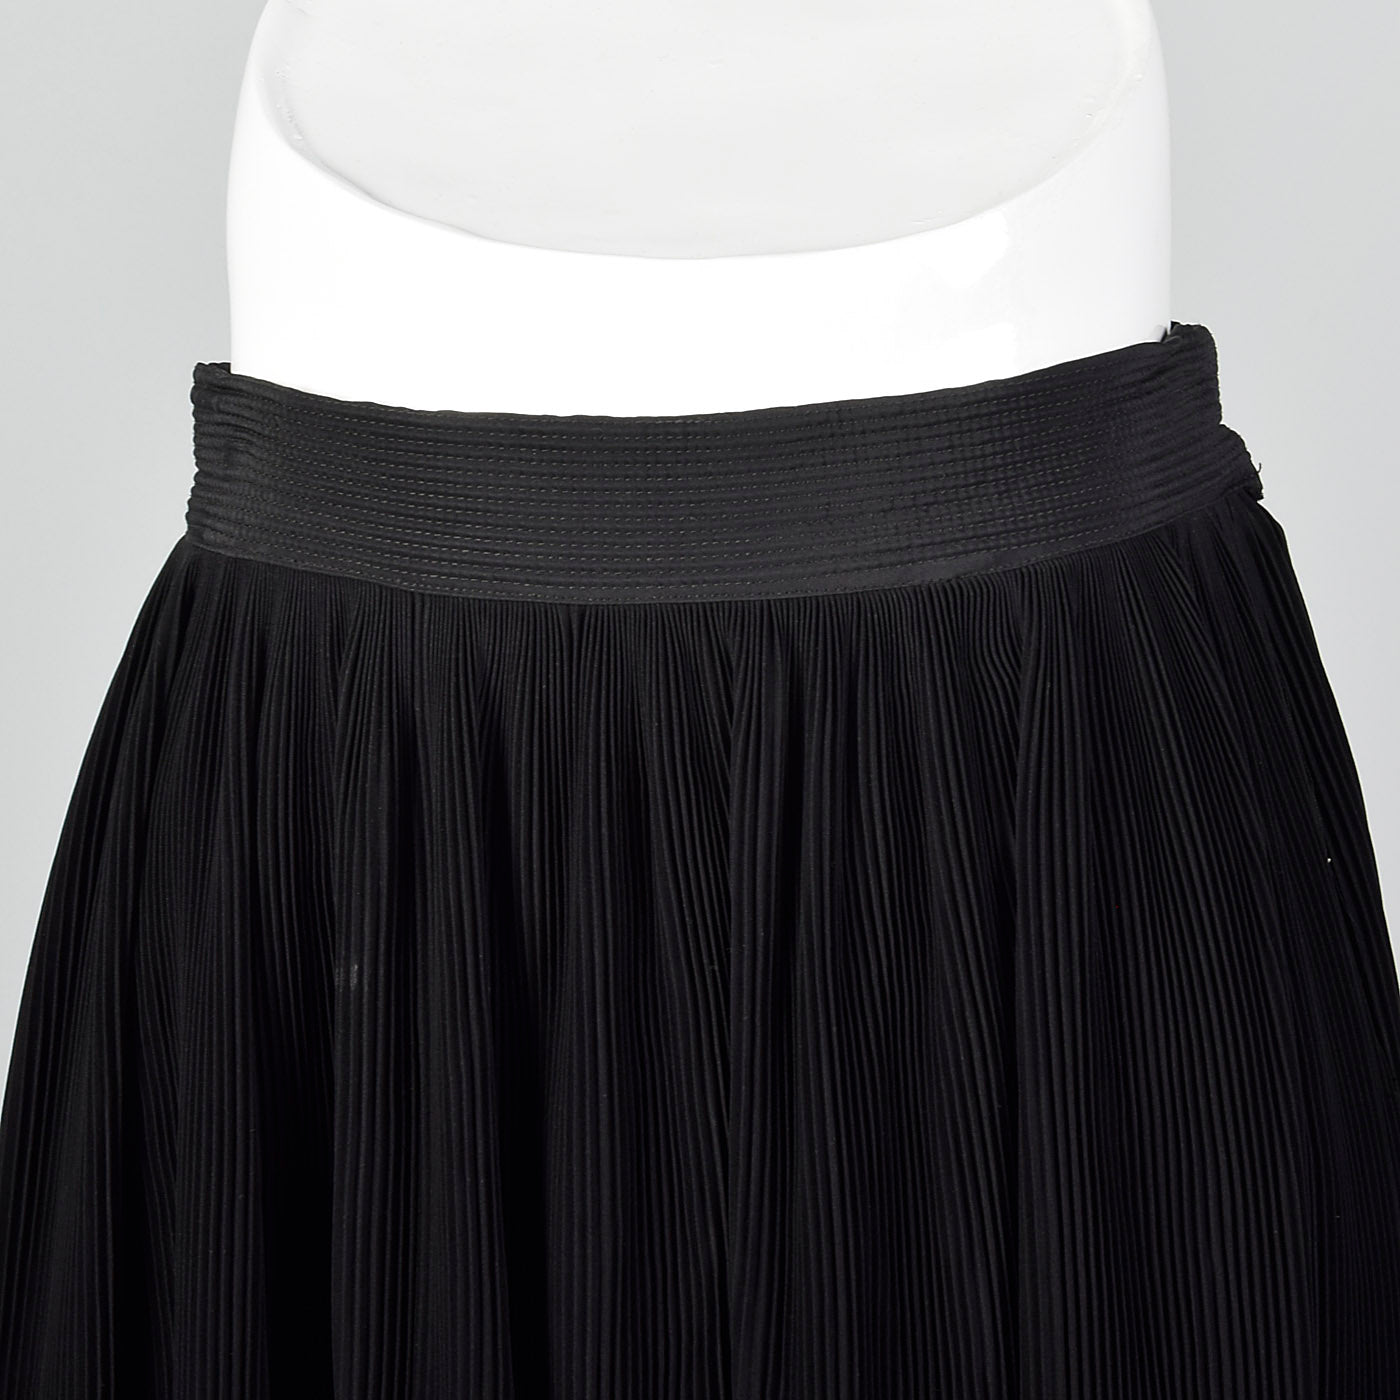 1950s Black Crystal Pleat Skirt